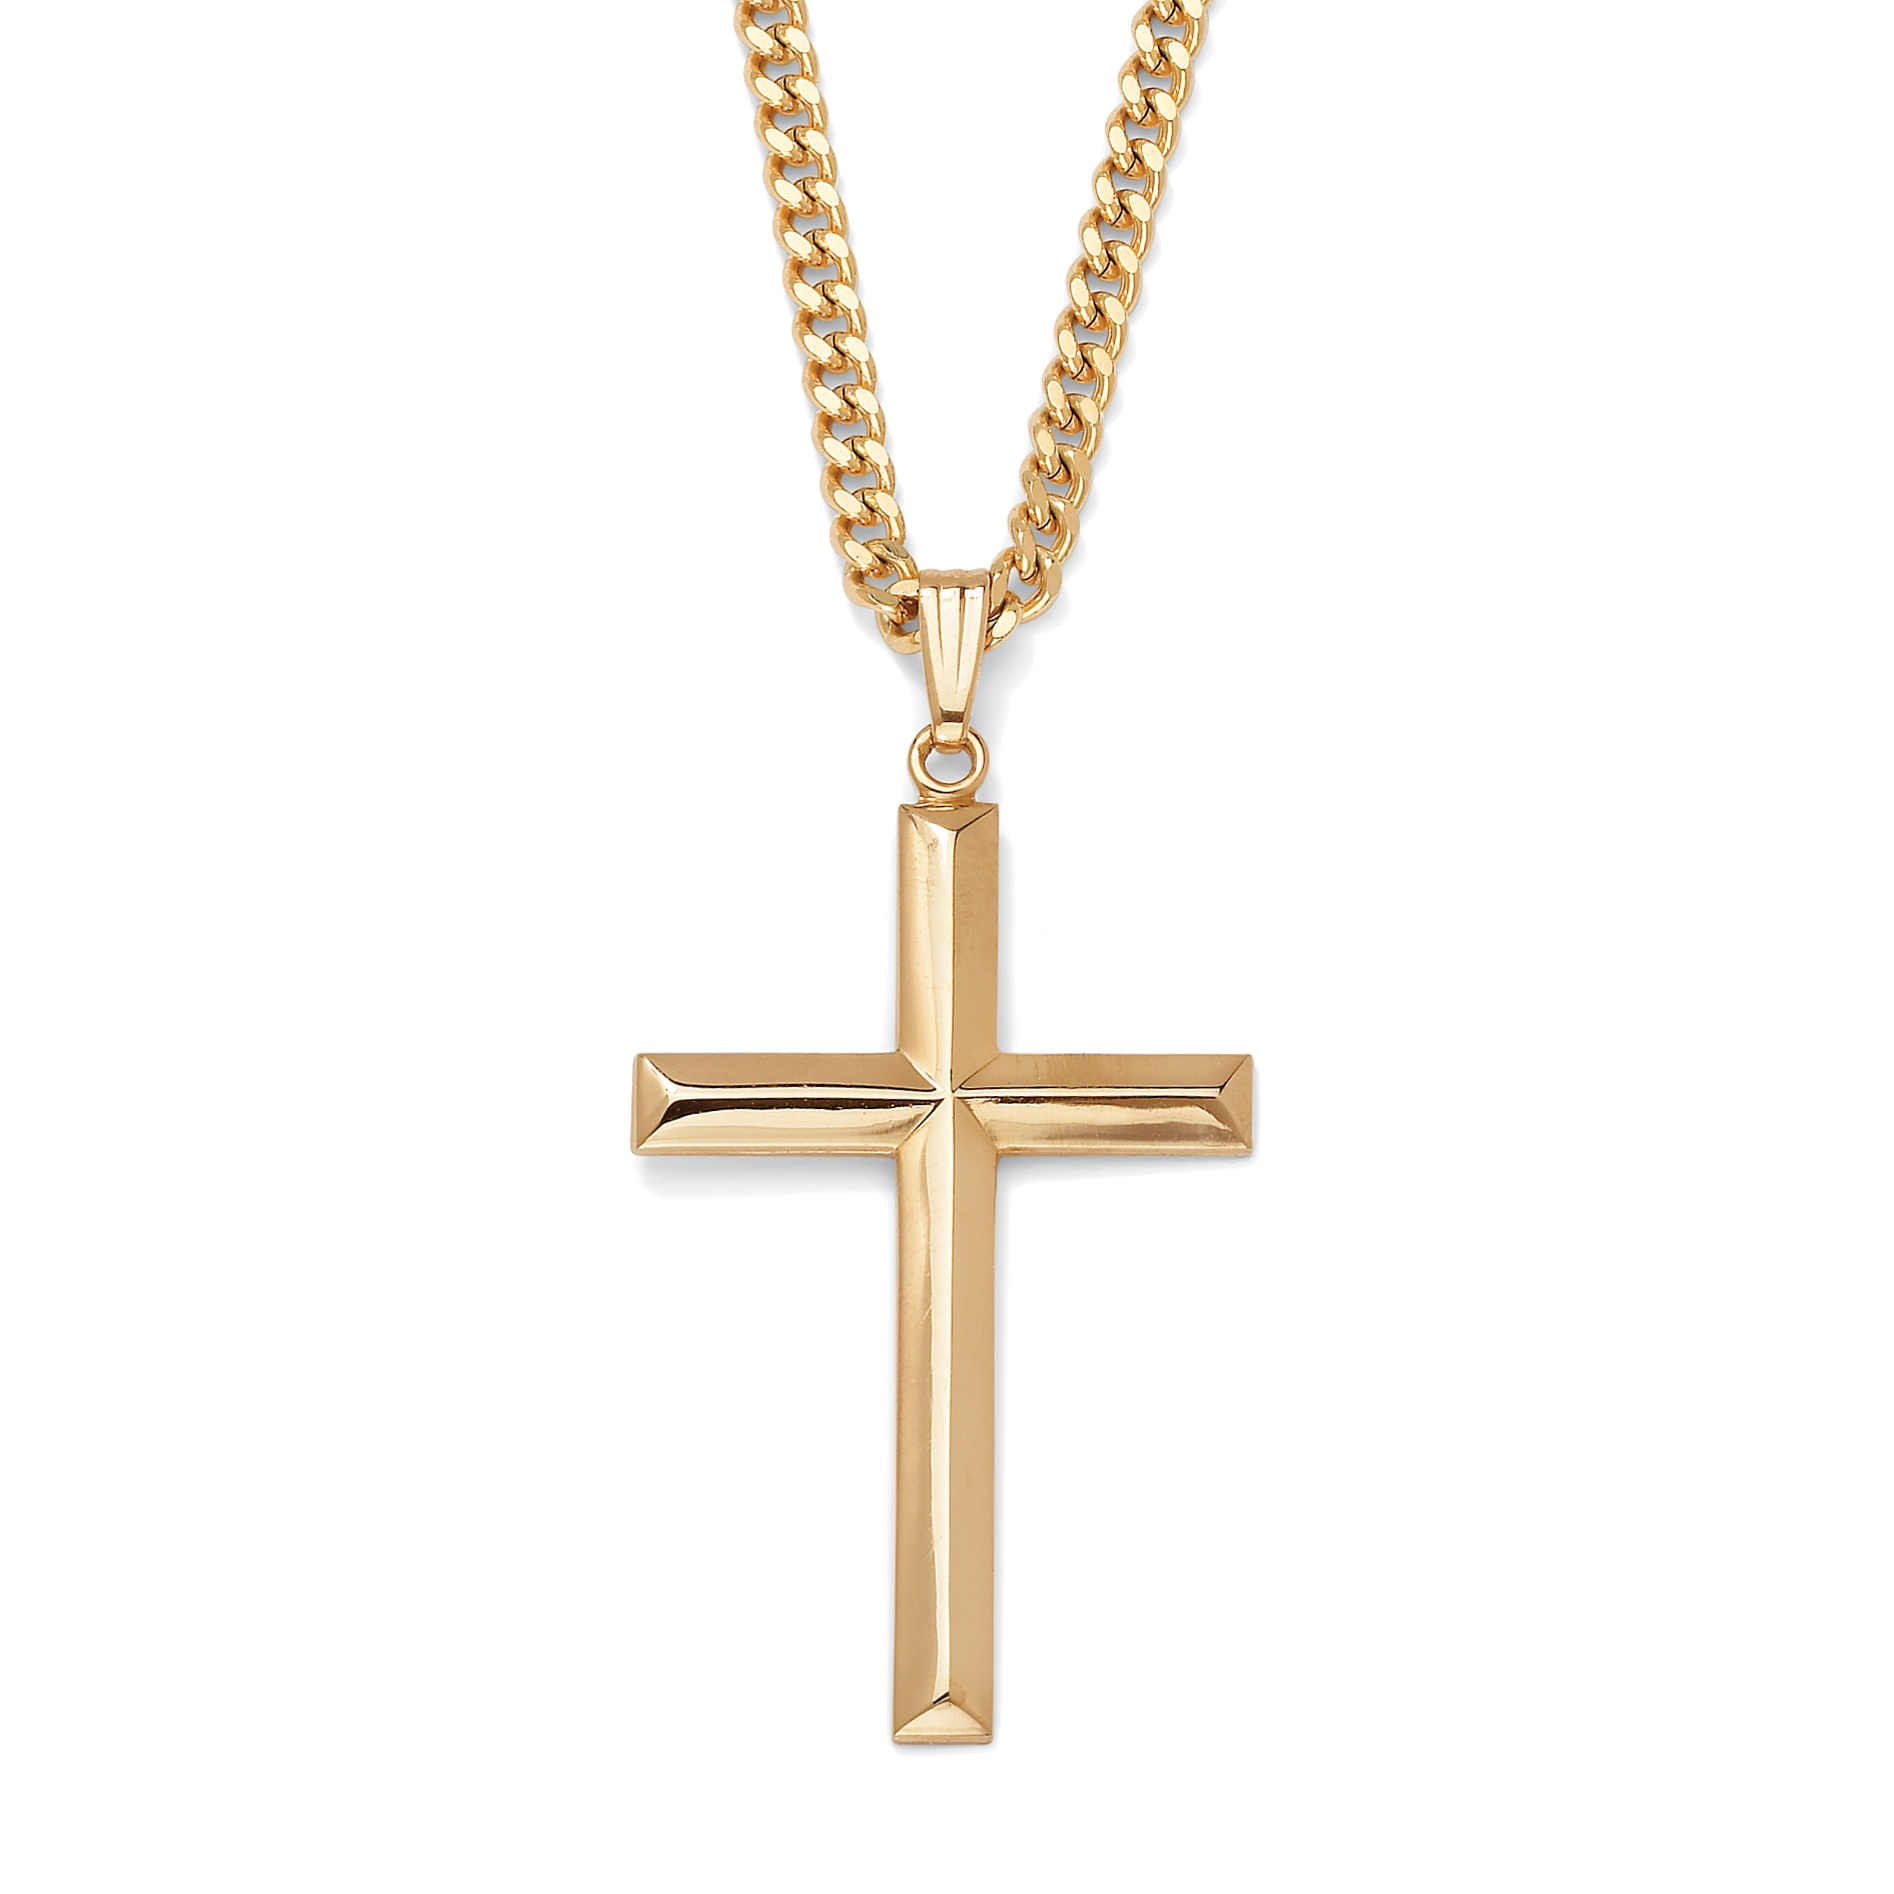 palmbeach jewelry 14k yellow gold plated cross pendant and